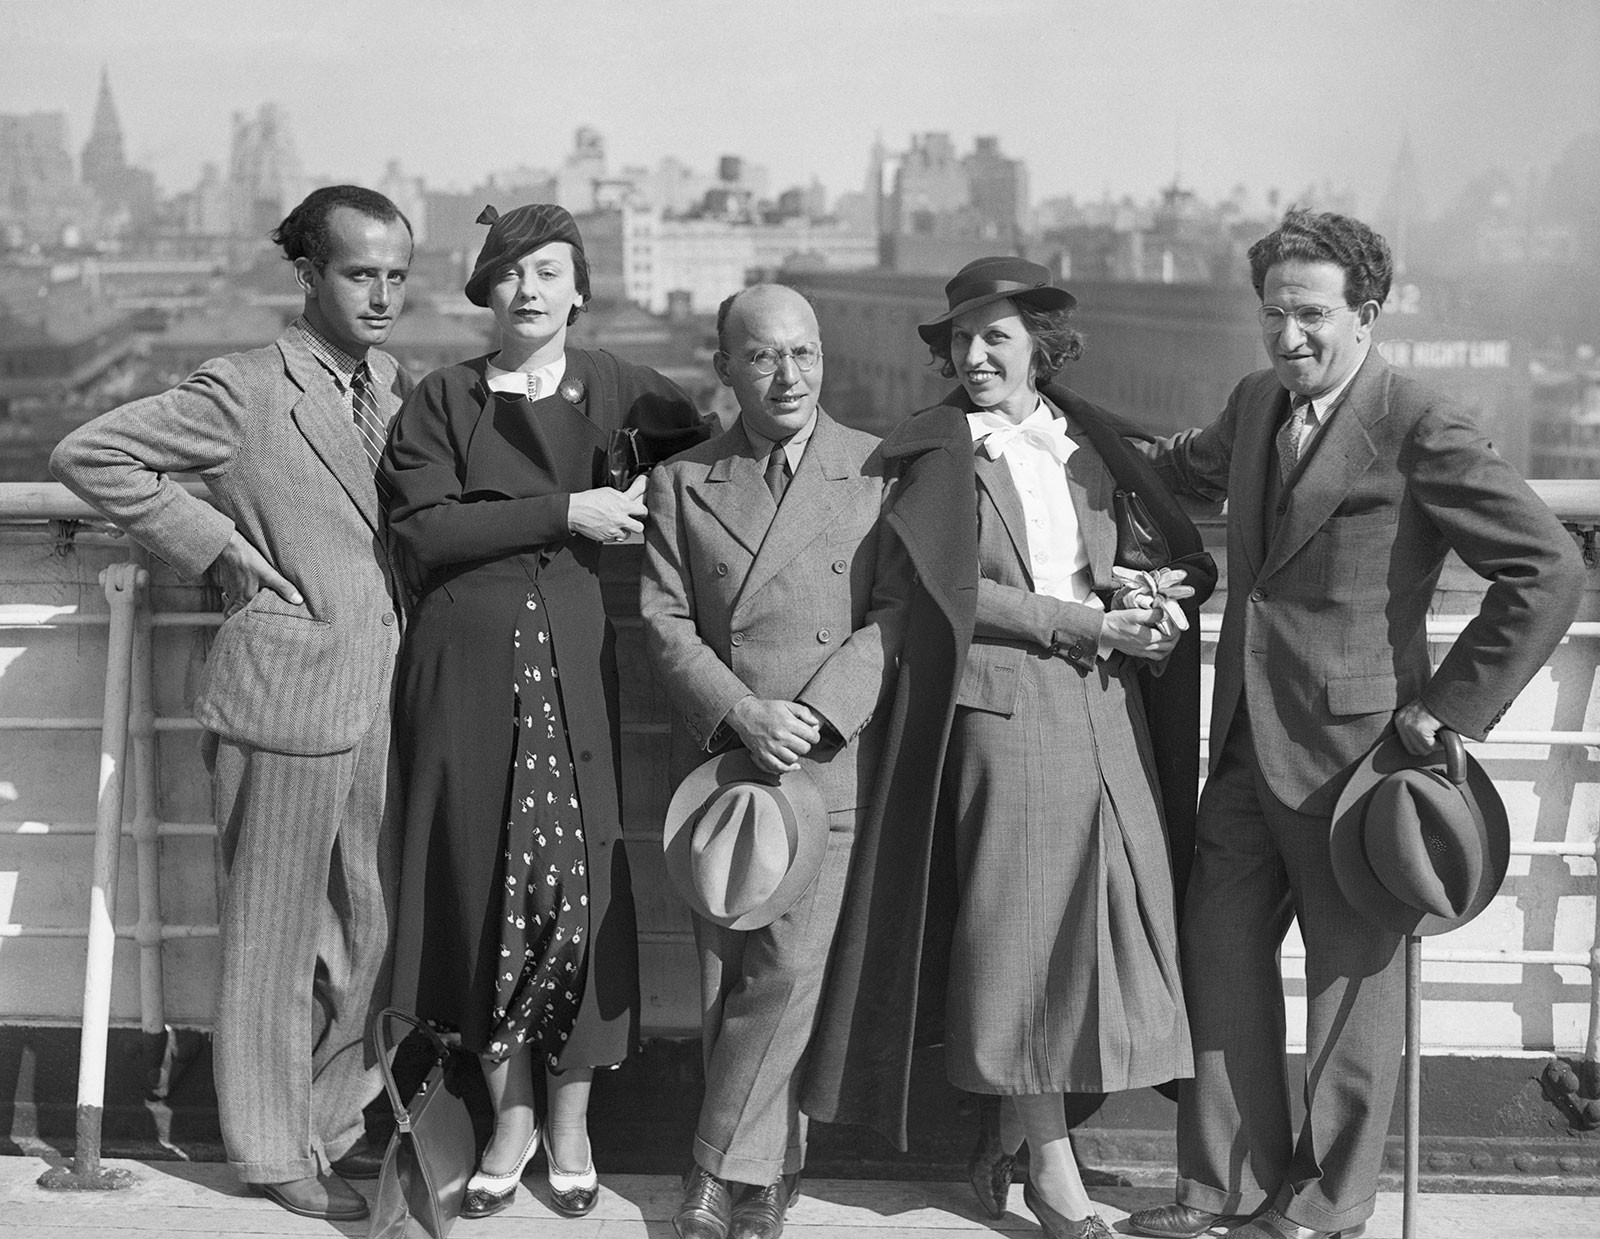 From left to right: Francesco and Eleonora Mendelssohn with Kurt Weil, Lotte Lenya, and Max Reinhardt upon arriving in New York on October 10th, 1935 © corbis images